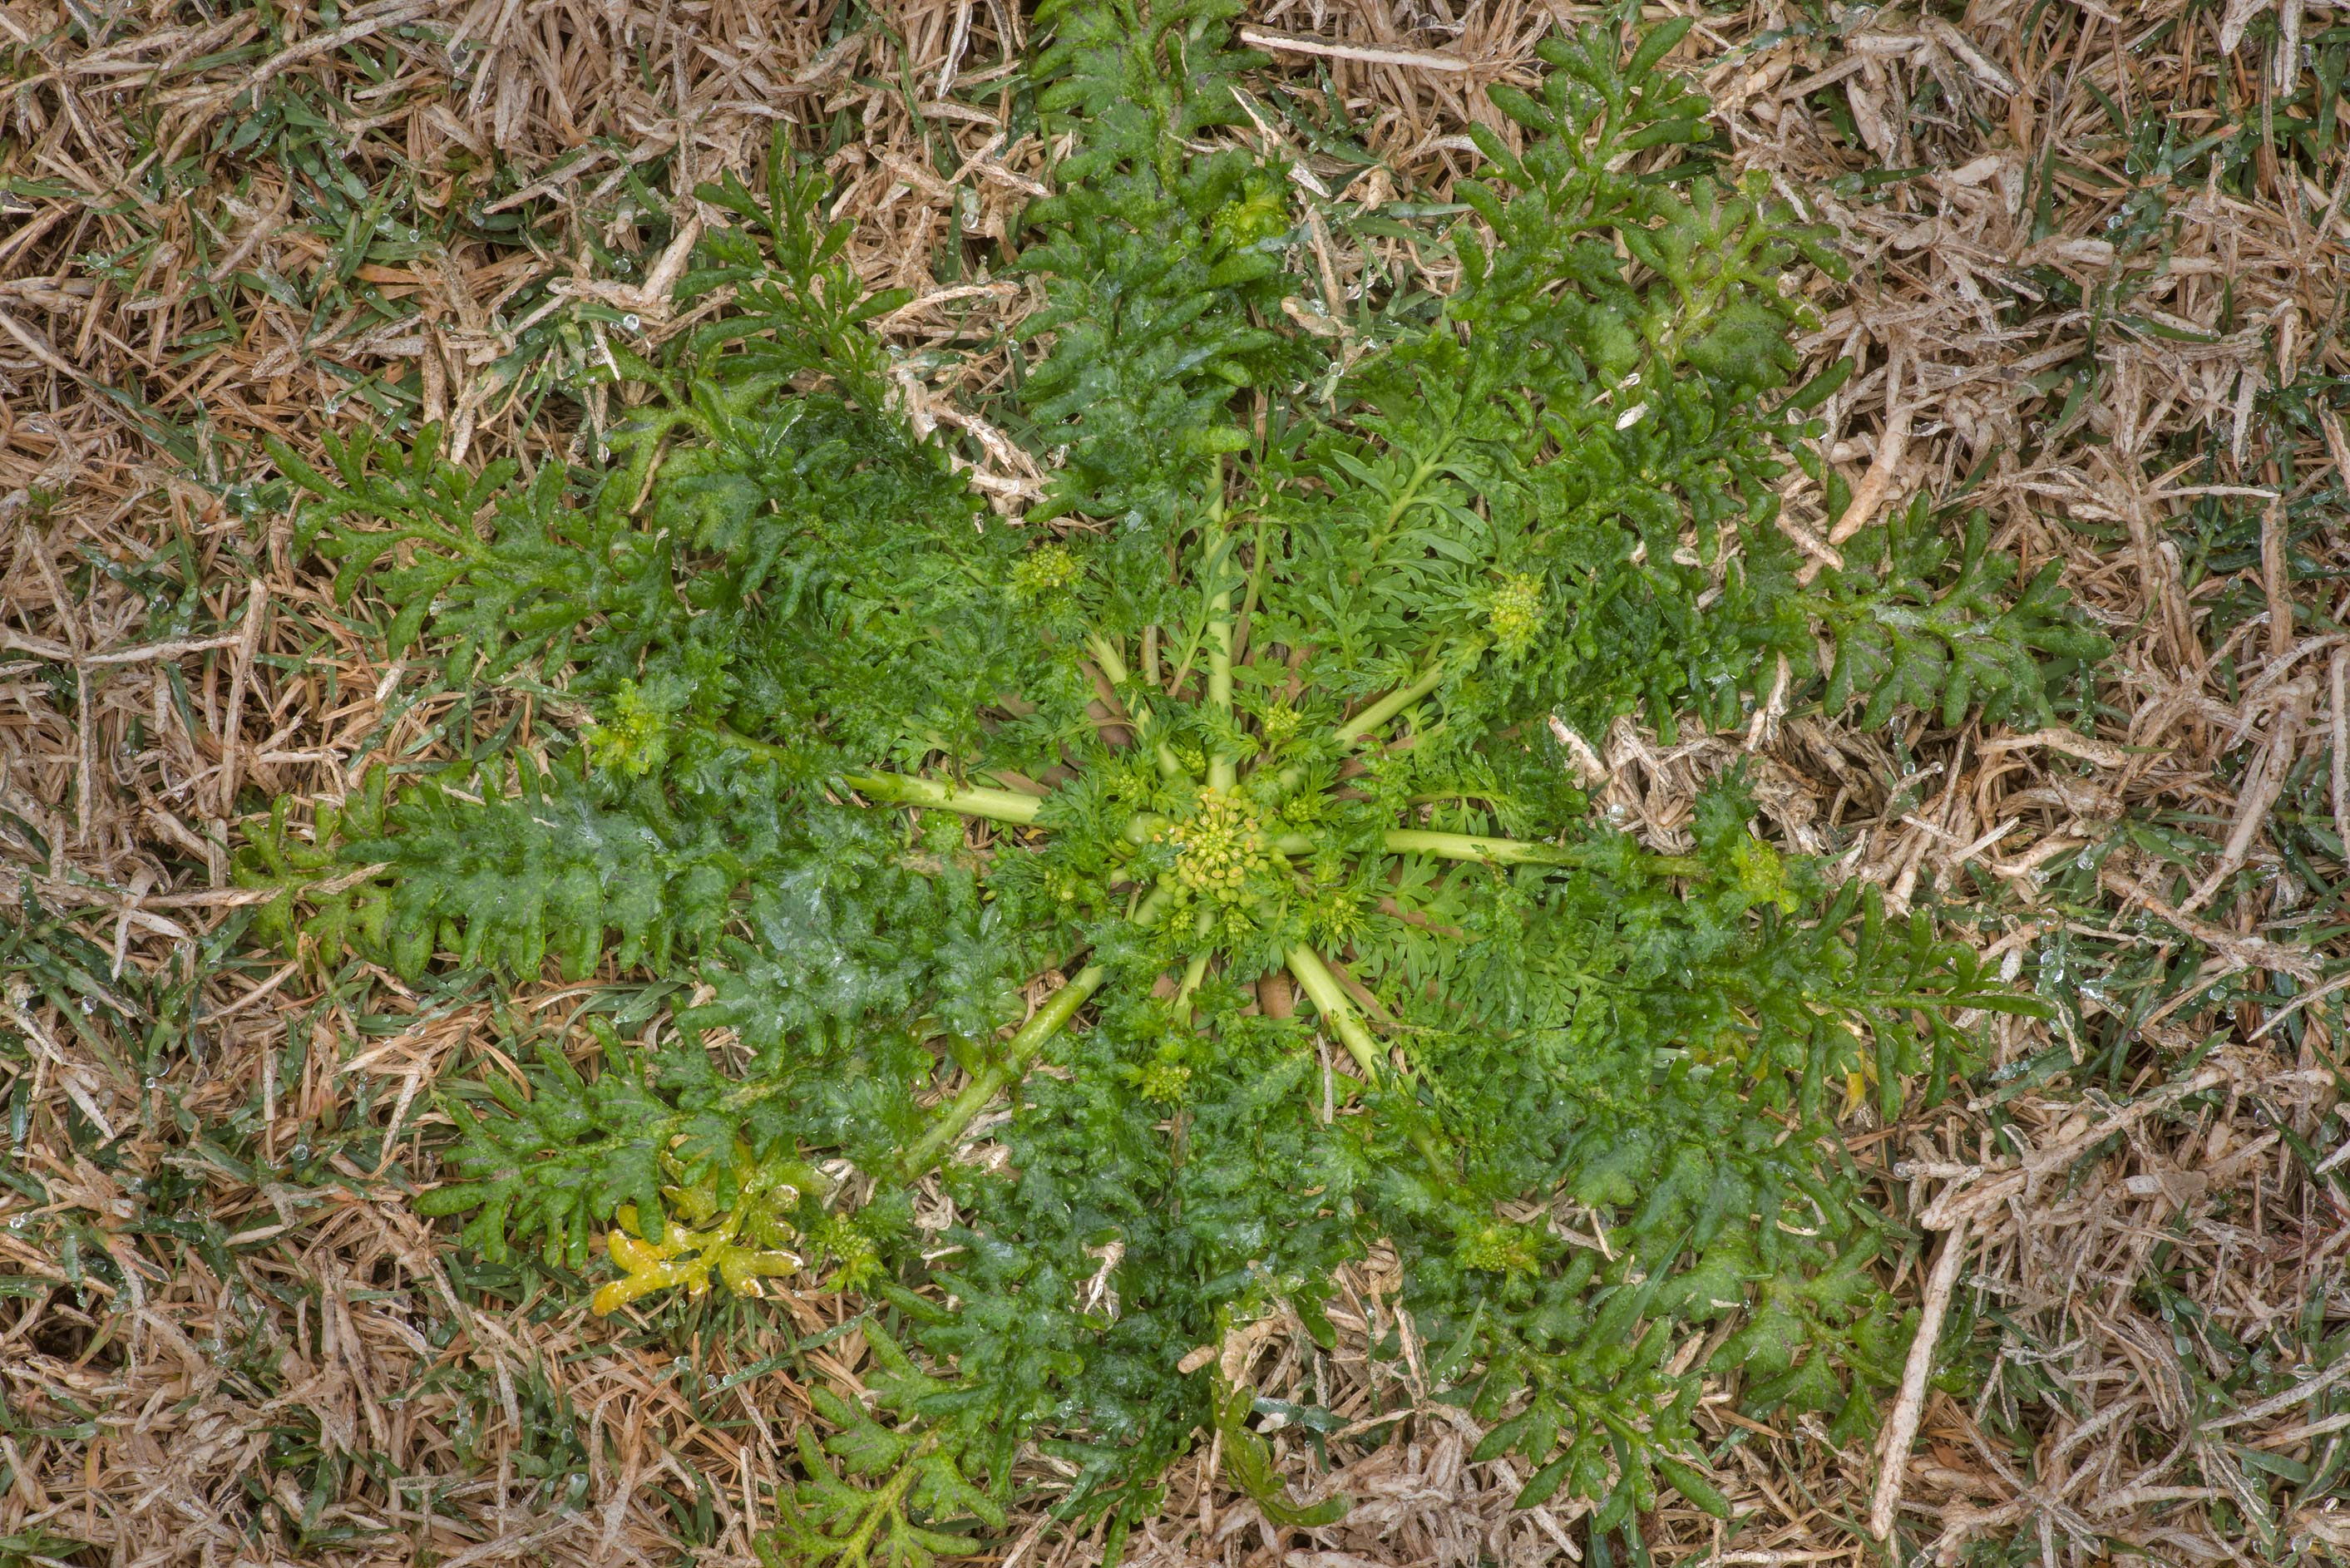 Rosette of lesser swine-cress (Lepidium didymum...M University. College Station, Texas